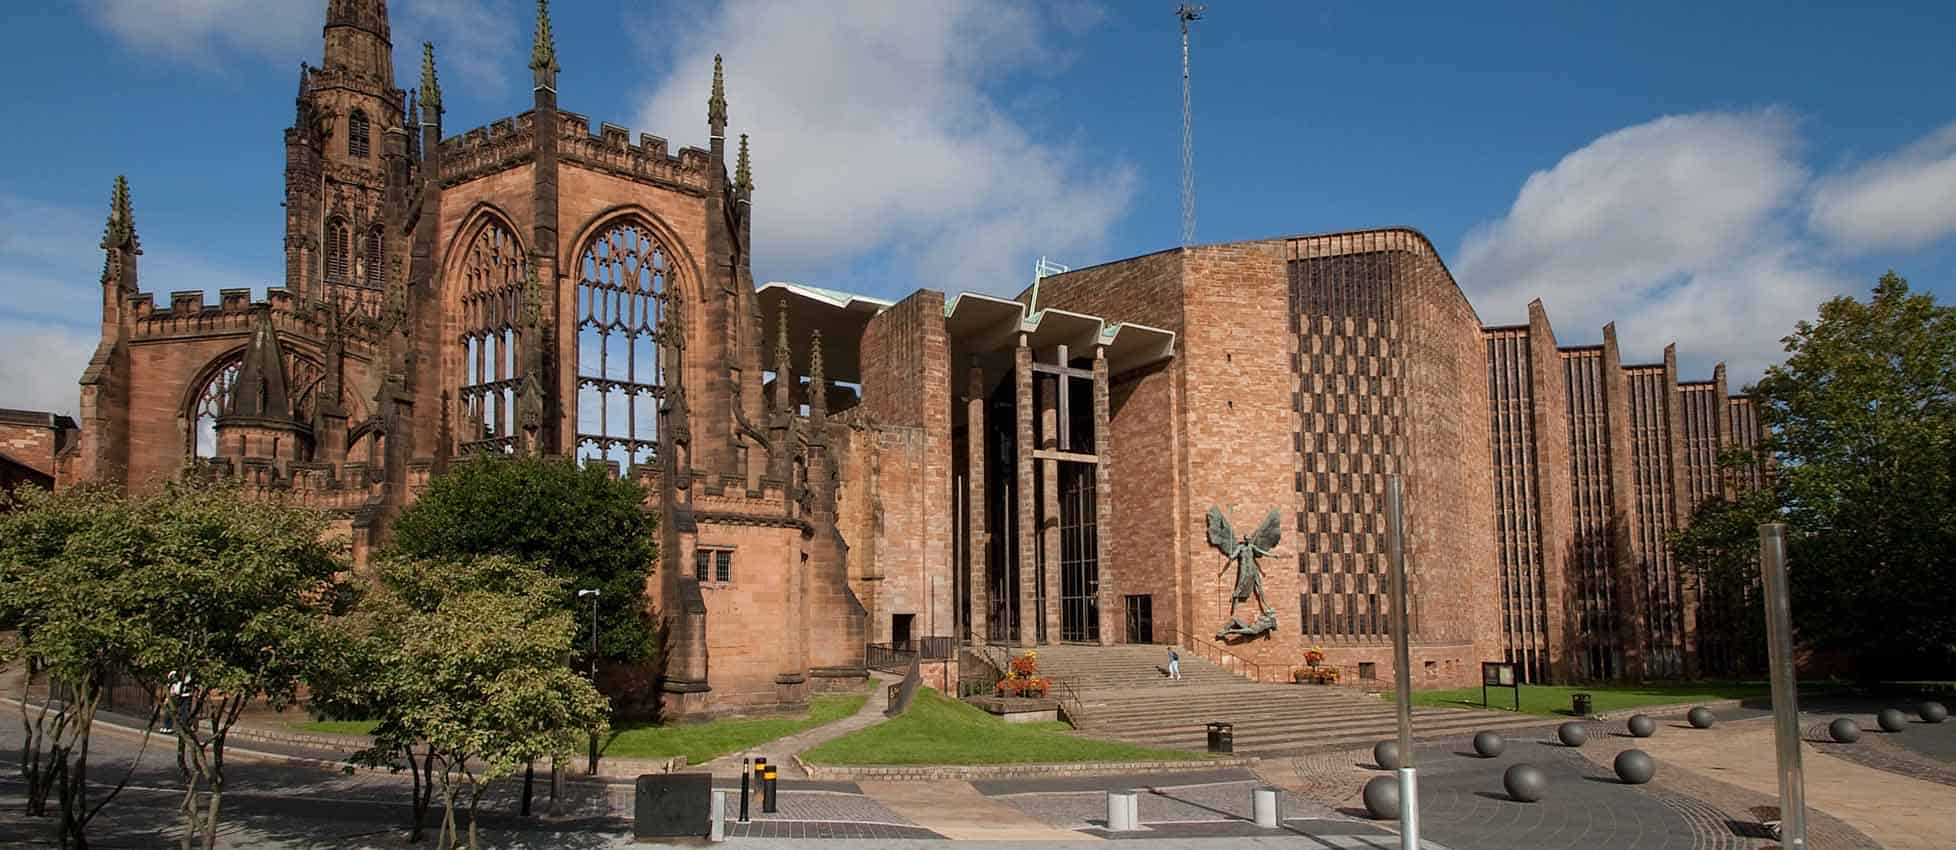 Coventry cathedral the association of english cathedrals for The coventry